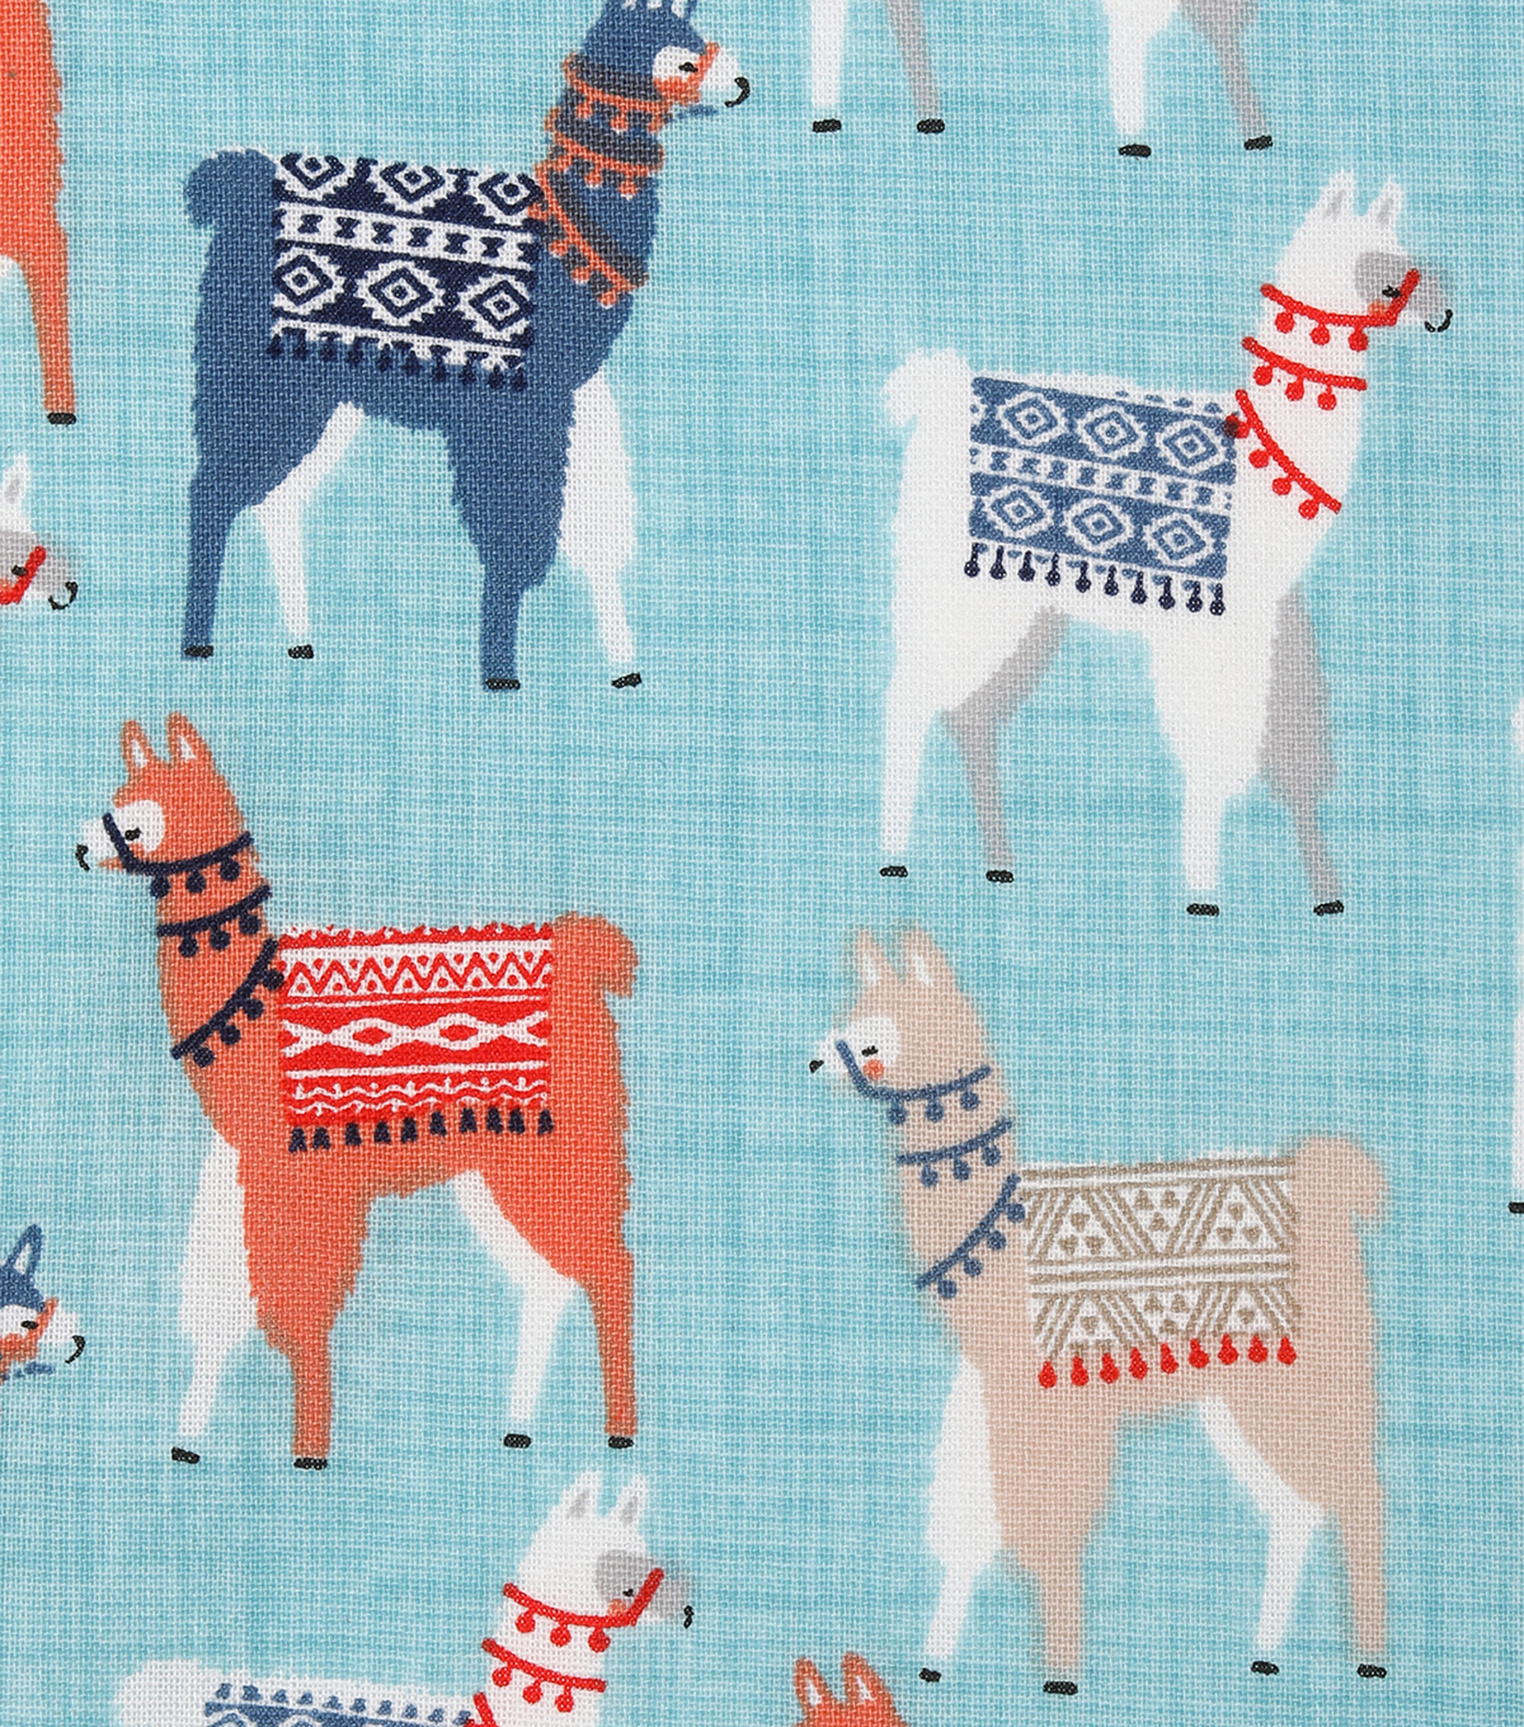 Novelty Cotton Fabric -Mixed Llamas With Blankets